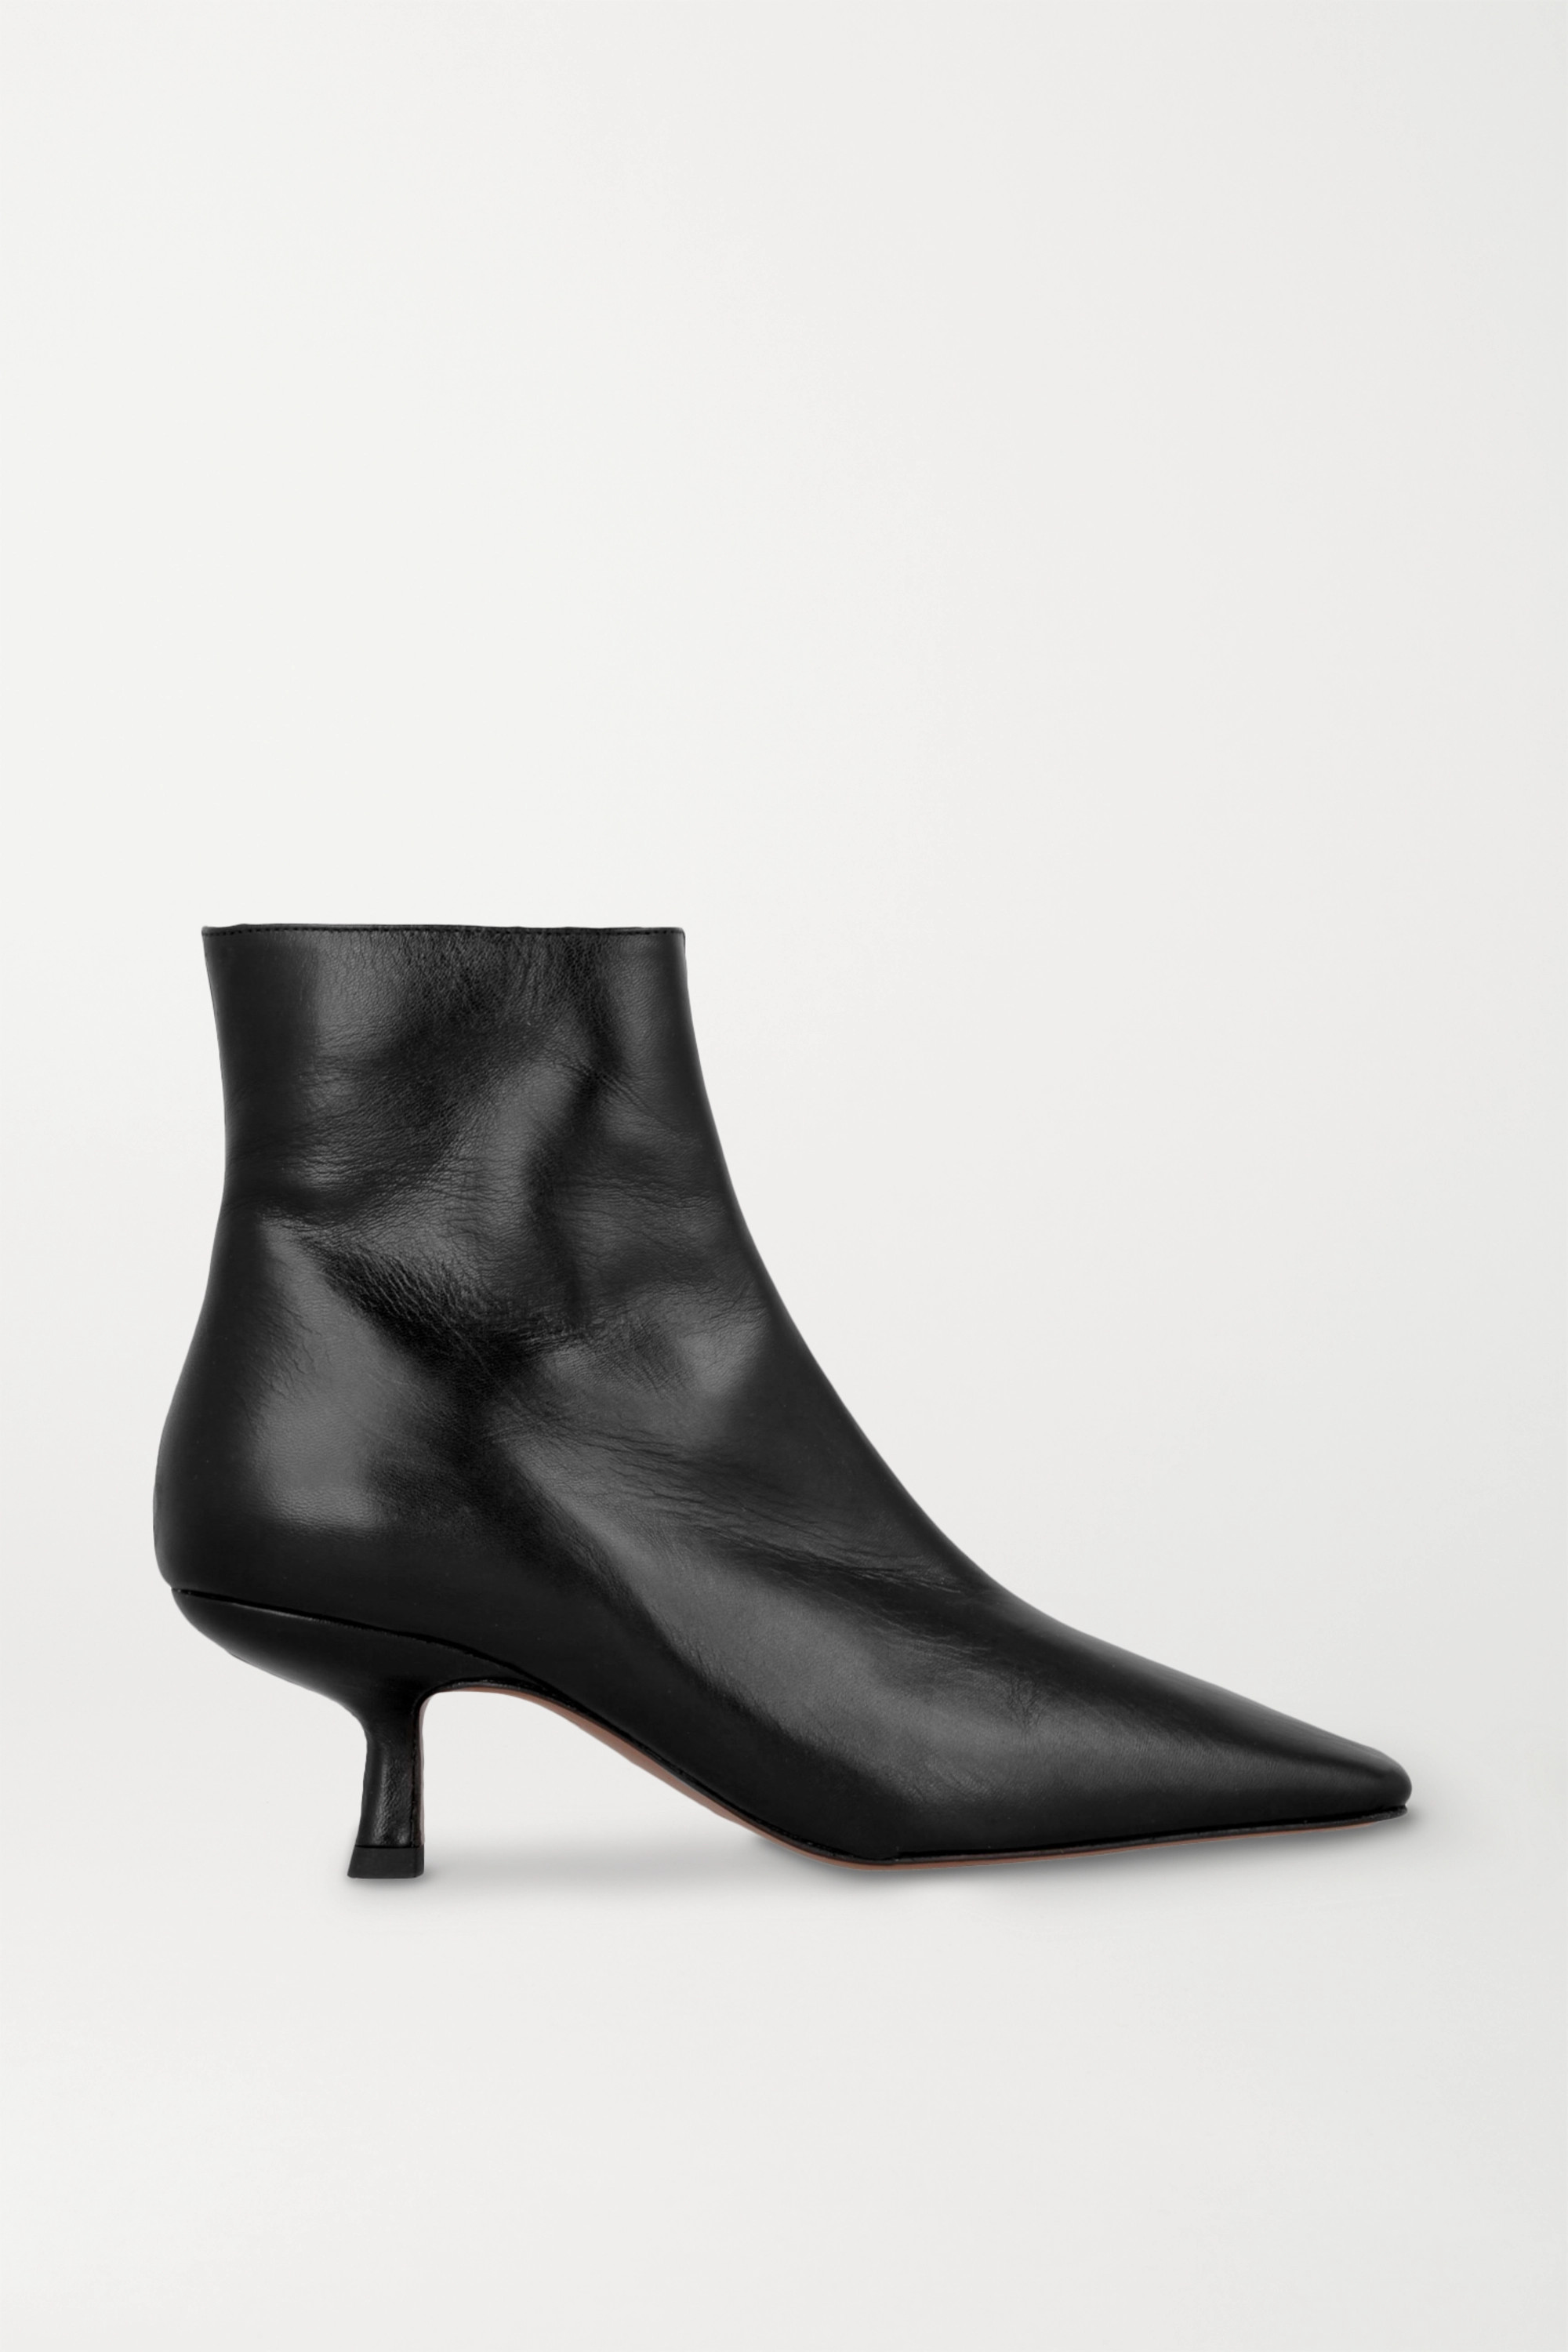 BY FAR Lange leather ankle boots